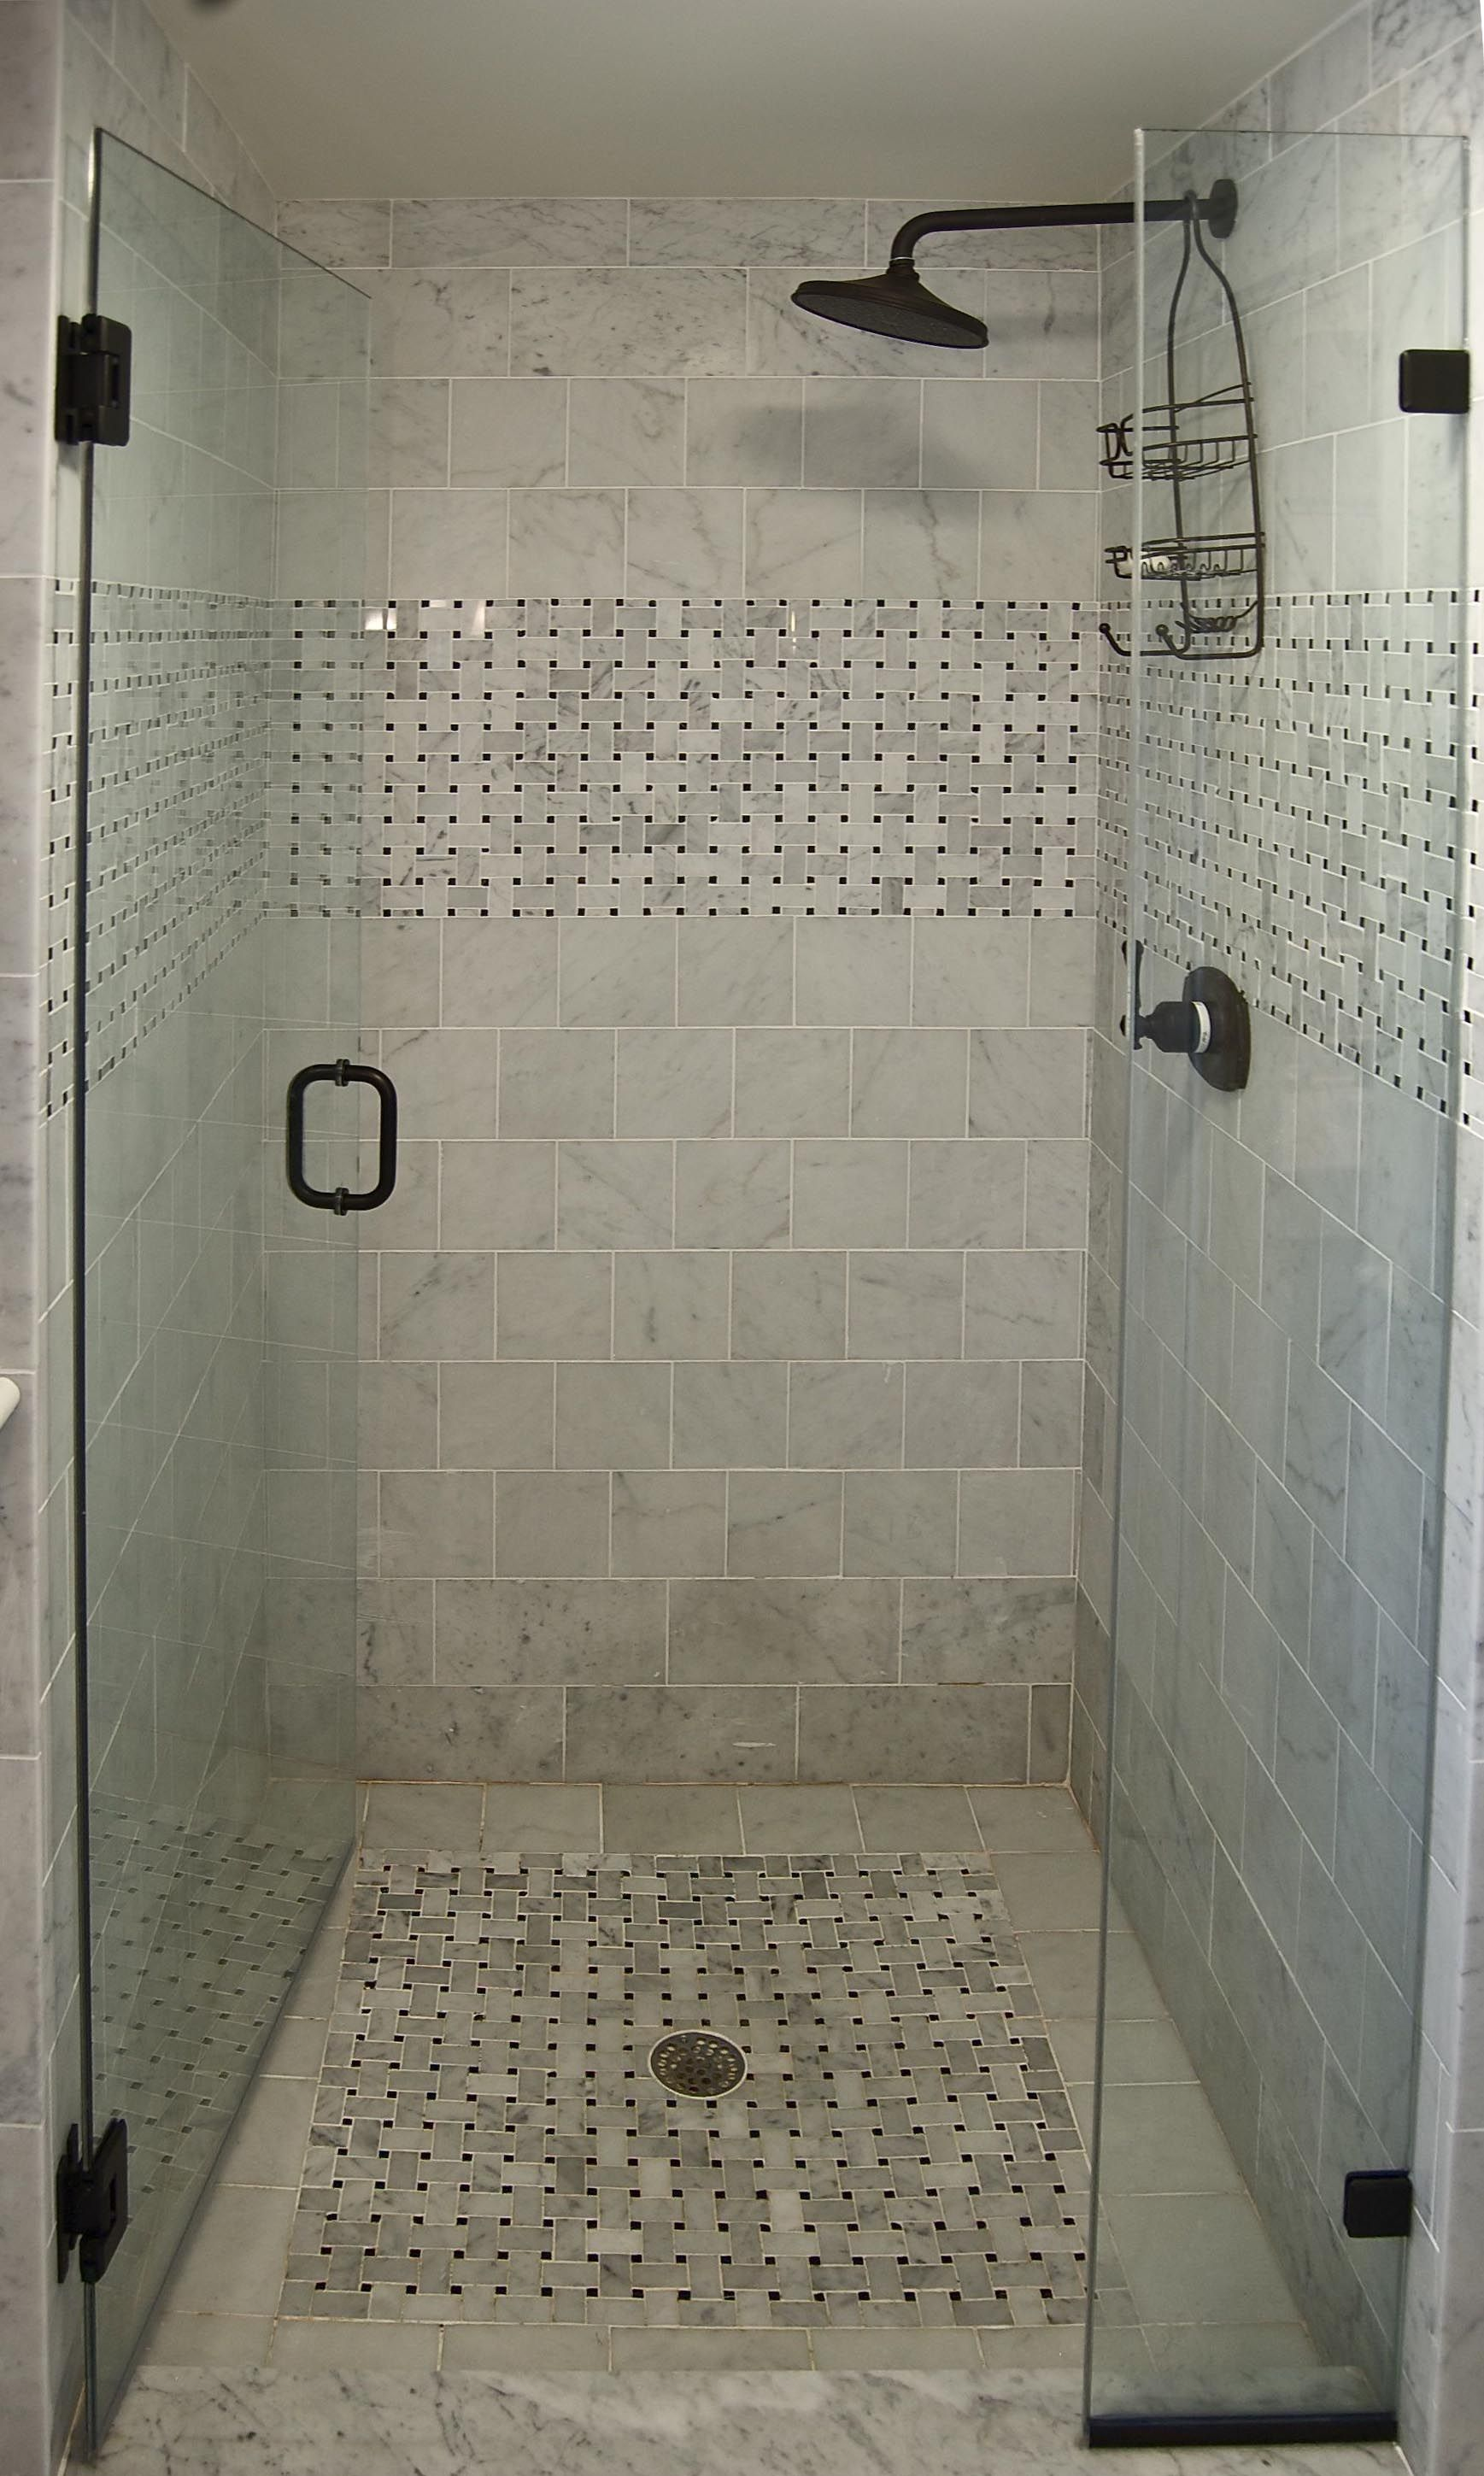 How to Clean Grout in Shower with Environmentally Friendly ...